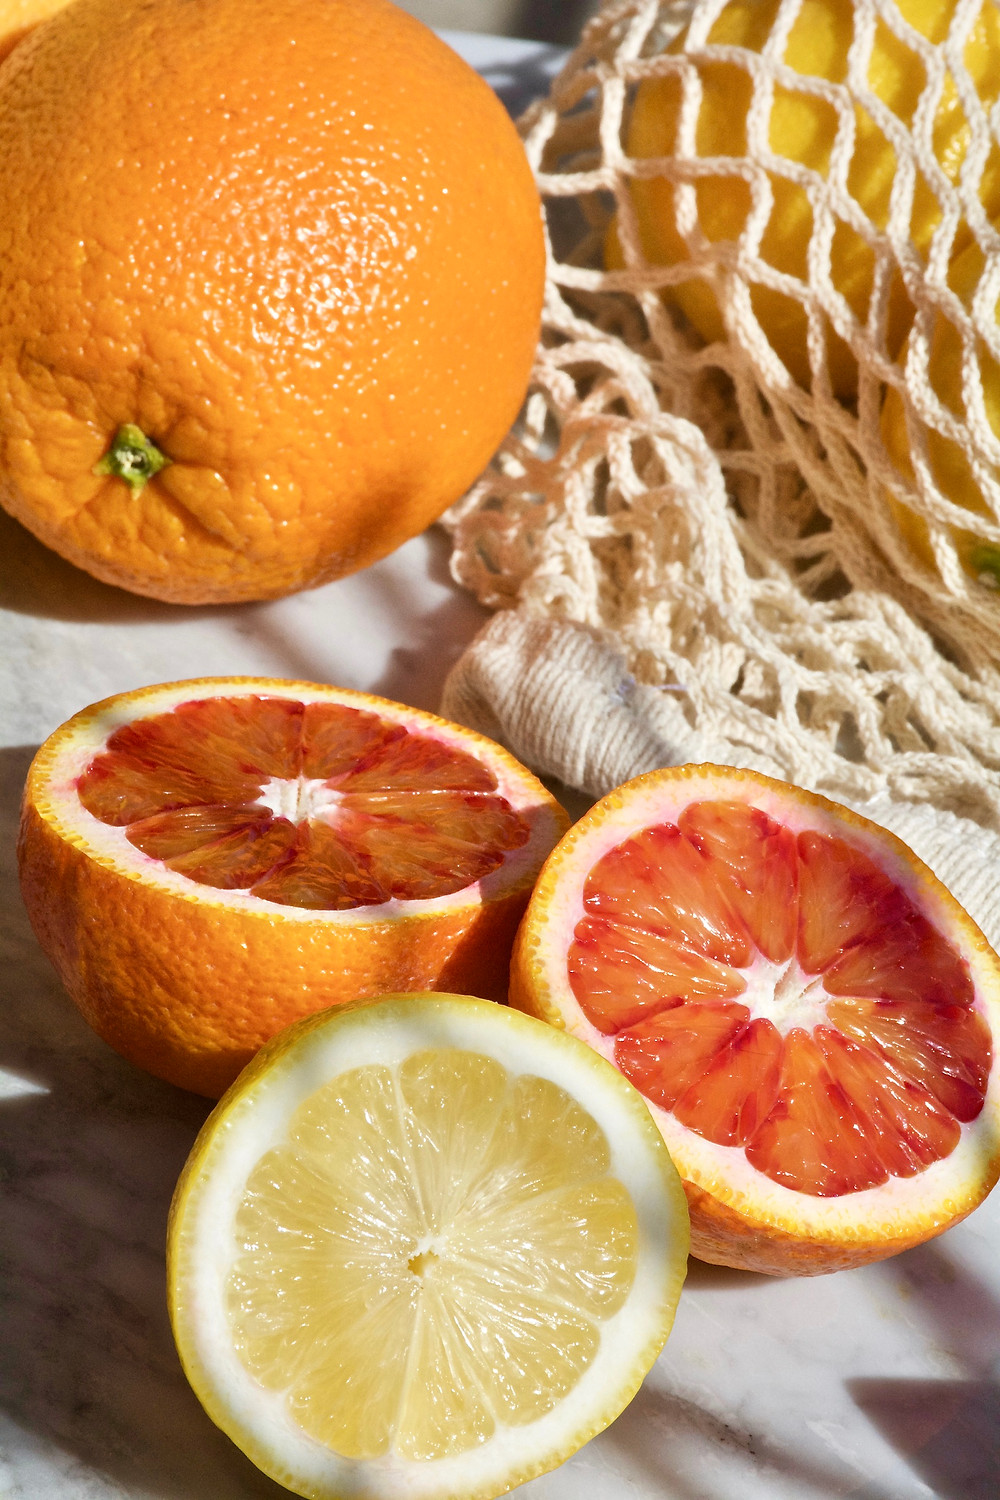 The Beauty Benefits of Nutrients, Clean Food, Beauty Food, Food for Beauty, Clean Eating, The Wellness Edit, The Beauty Edit, The Golden Edition, Health, Glass of Water with Lemon, Lemon Water, Orange, Blood Orange,  Lemons, citrus, Detox Water,